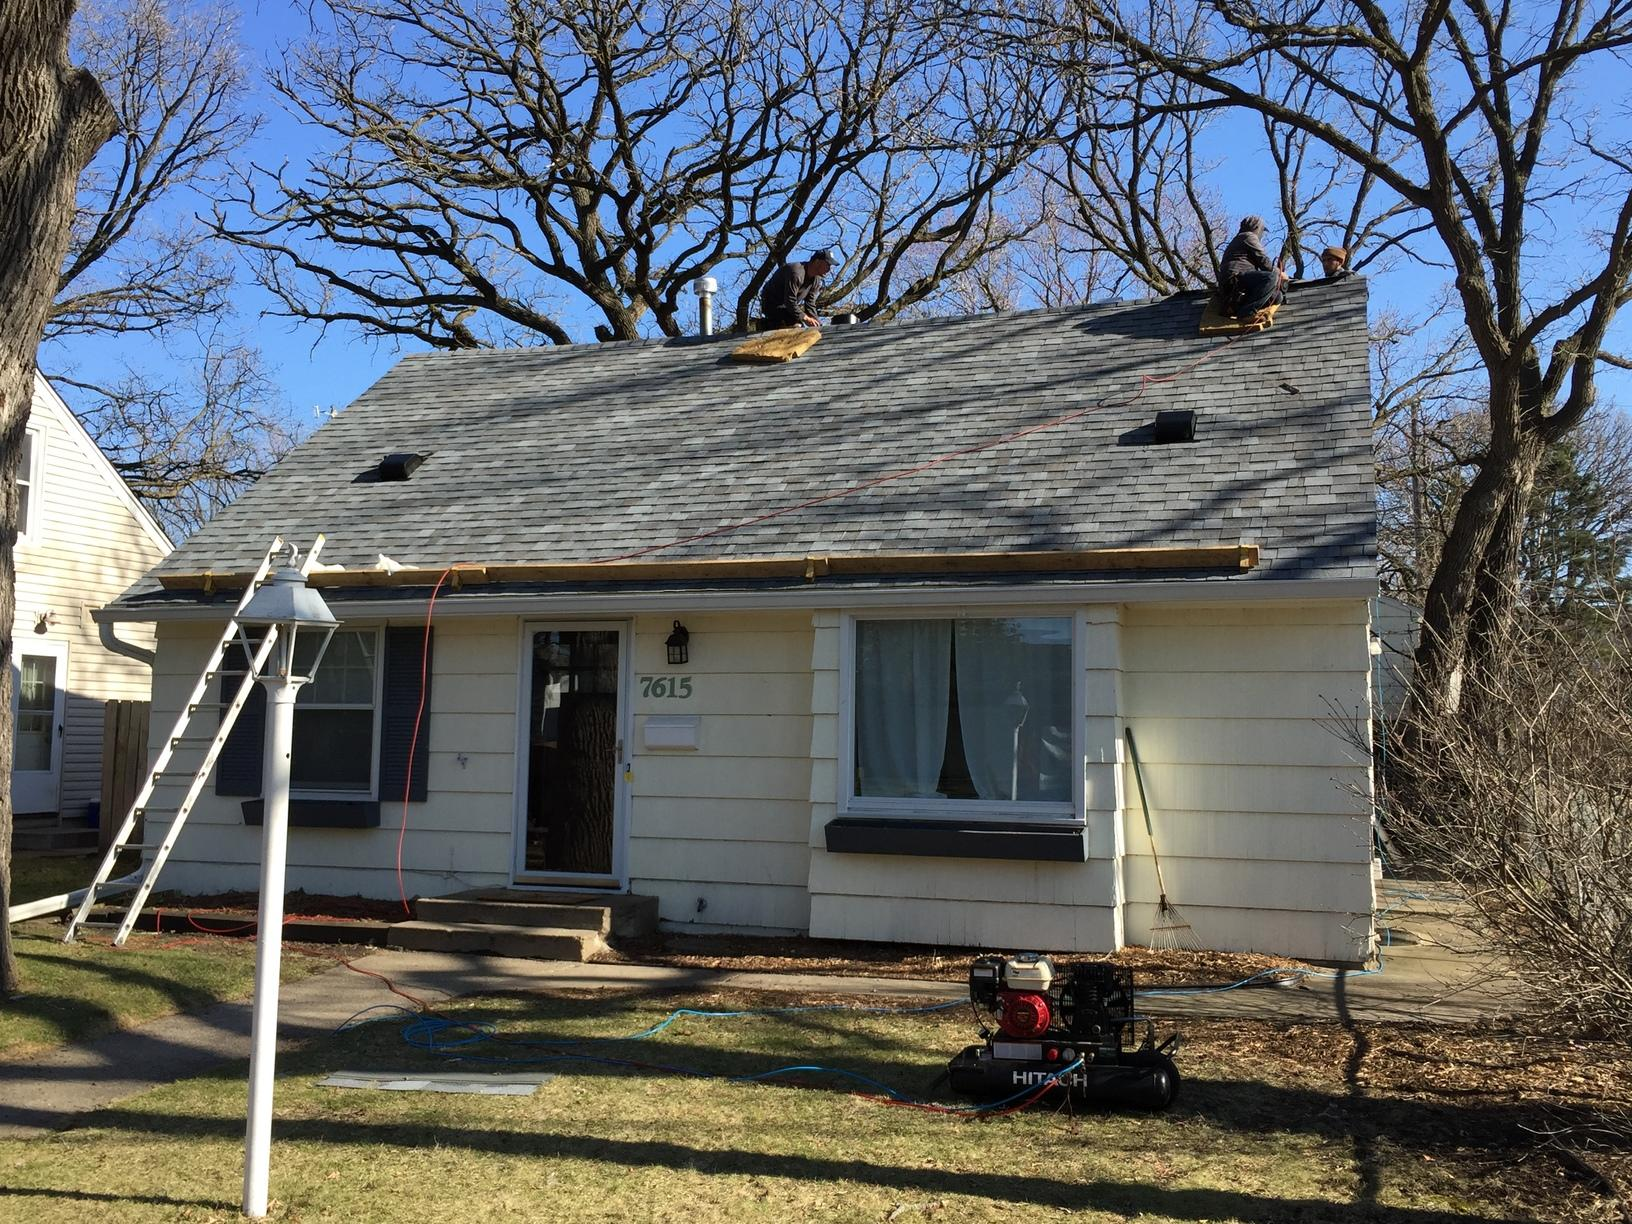 Gutter Replacement with a New Roof in St Louis Park, MN - After Photo